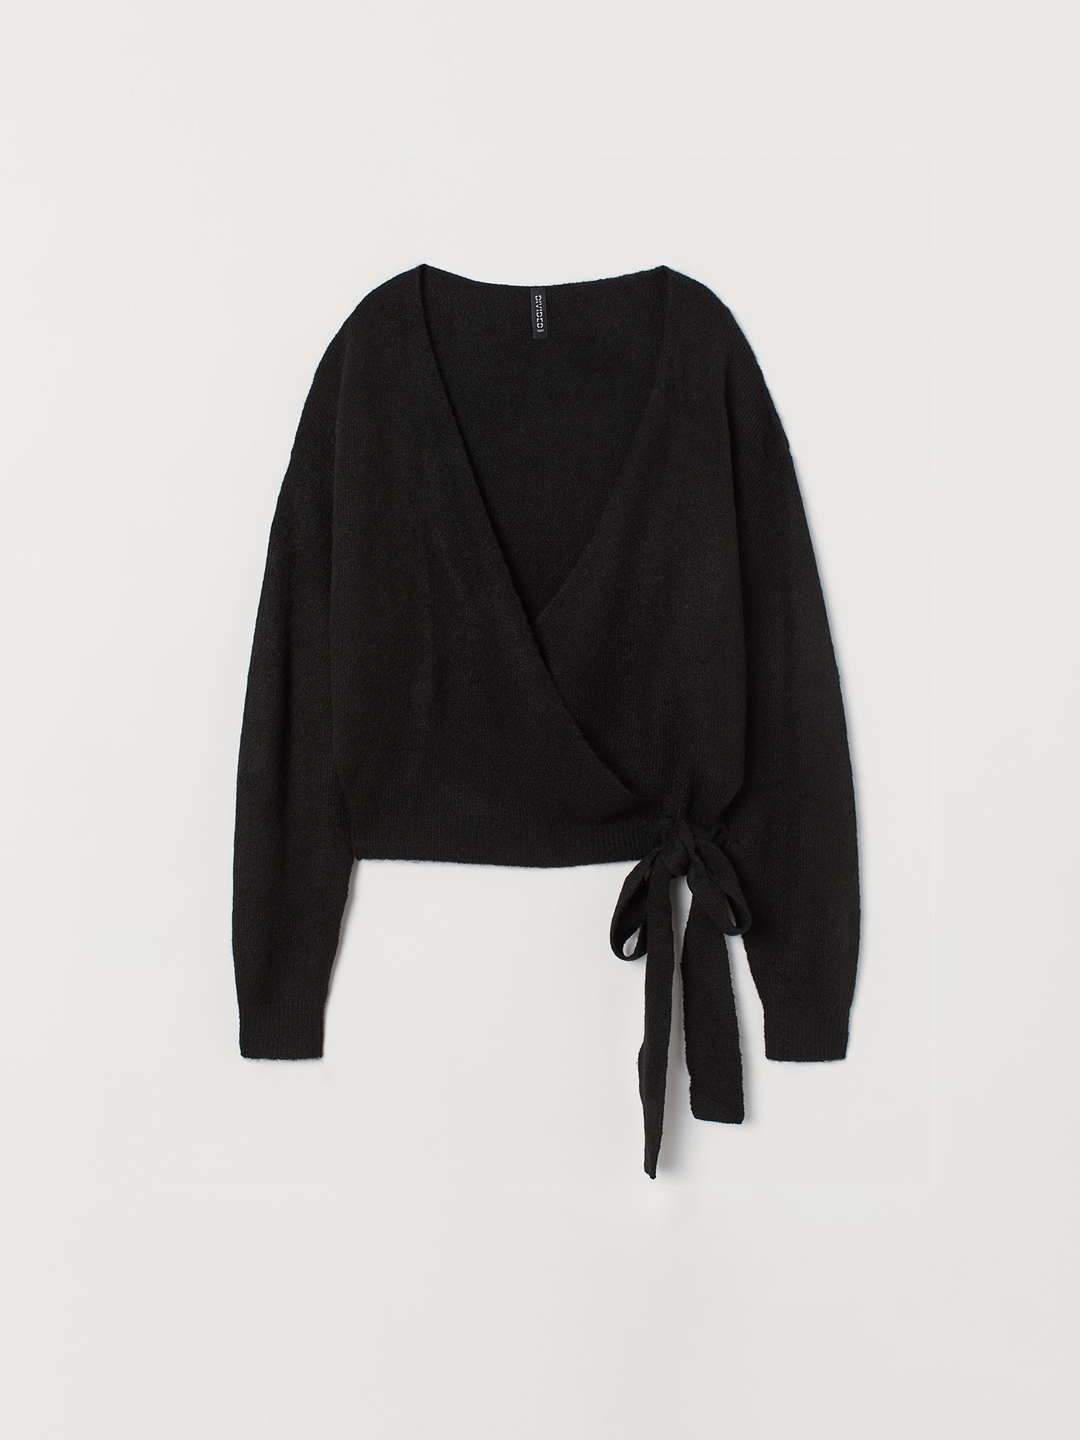 H&M Women Black Knitted Wrapover Cardigan